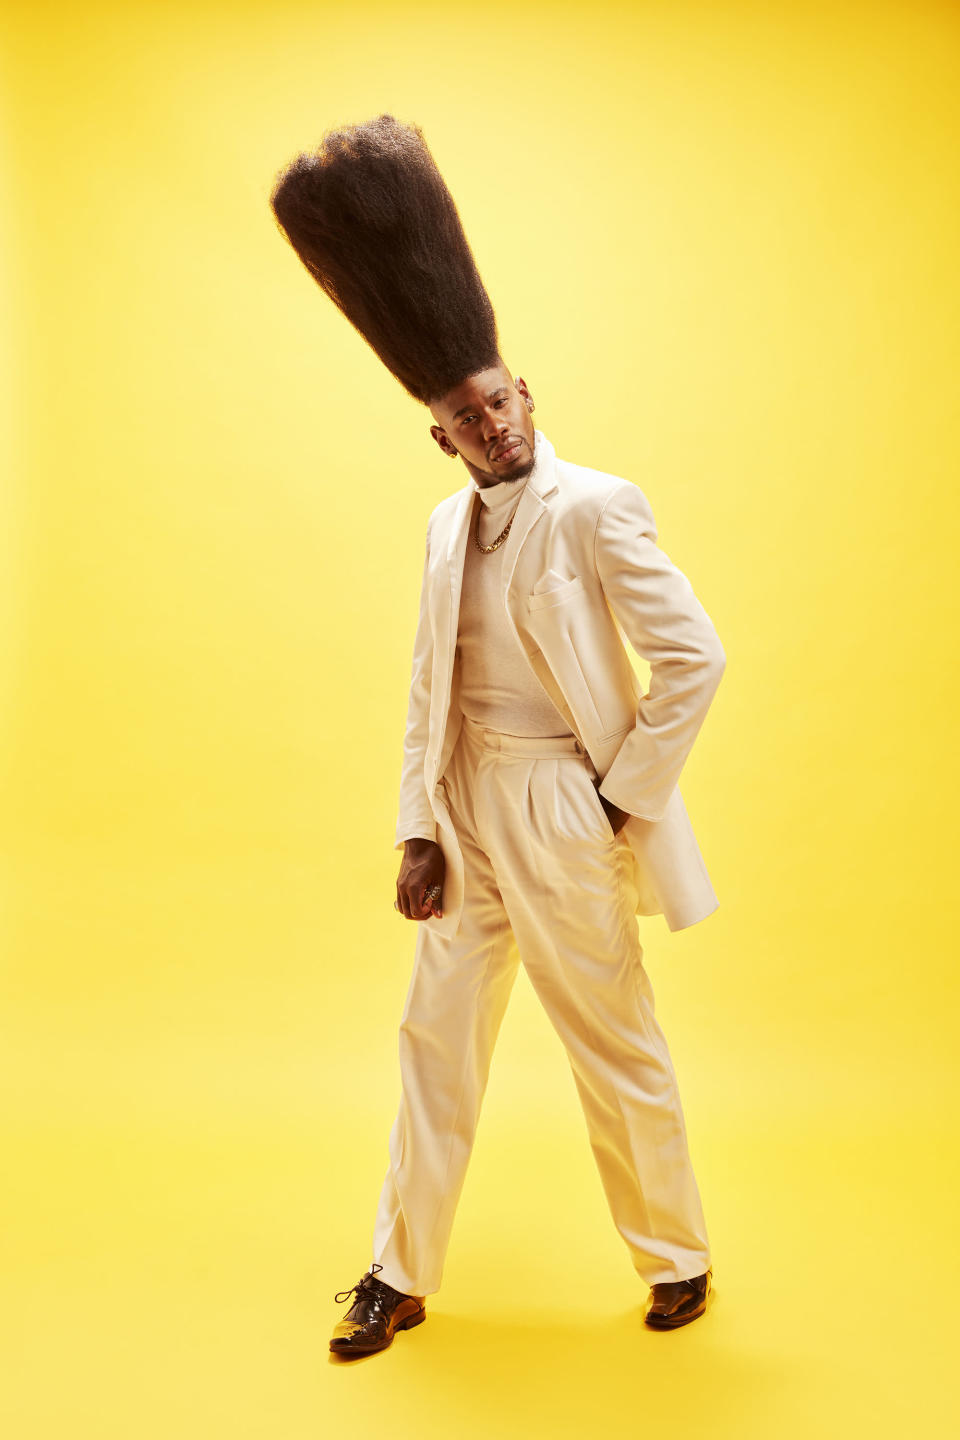 <p>Benny Harlem must have been growing his hair for a while, with a length of 52cm (20.5 inches). </p>